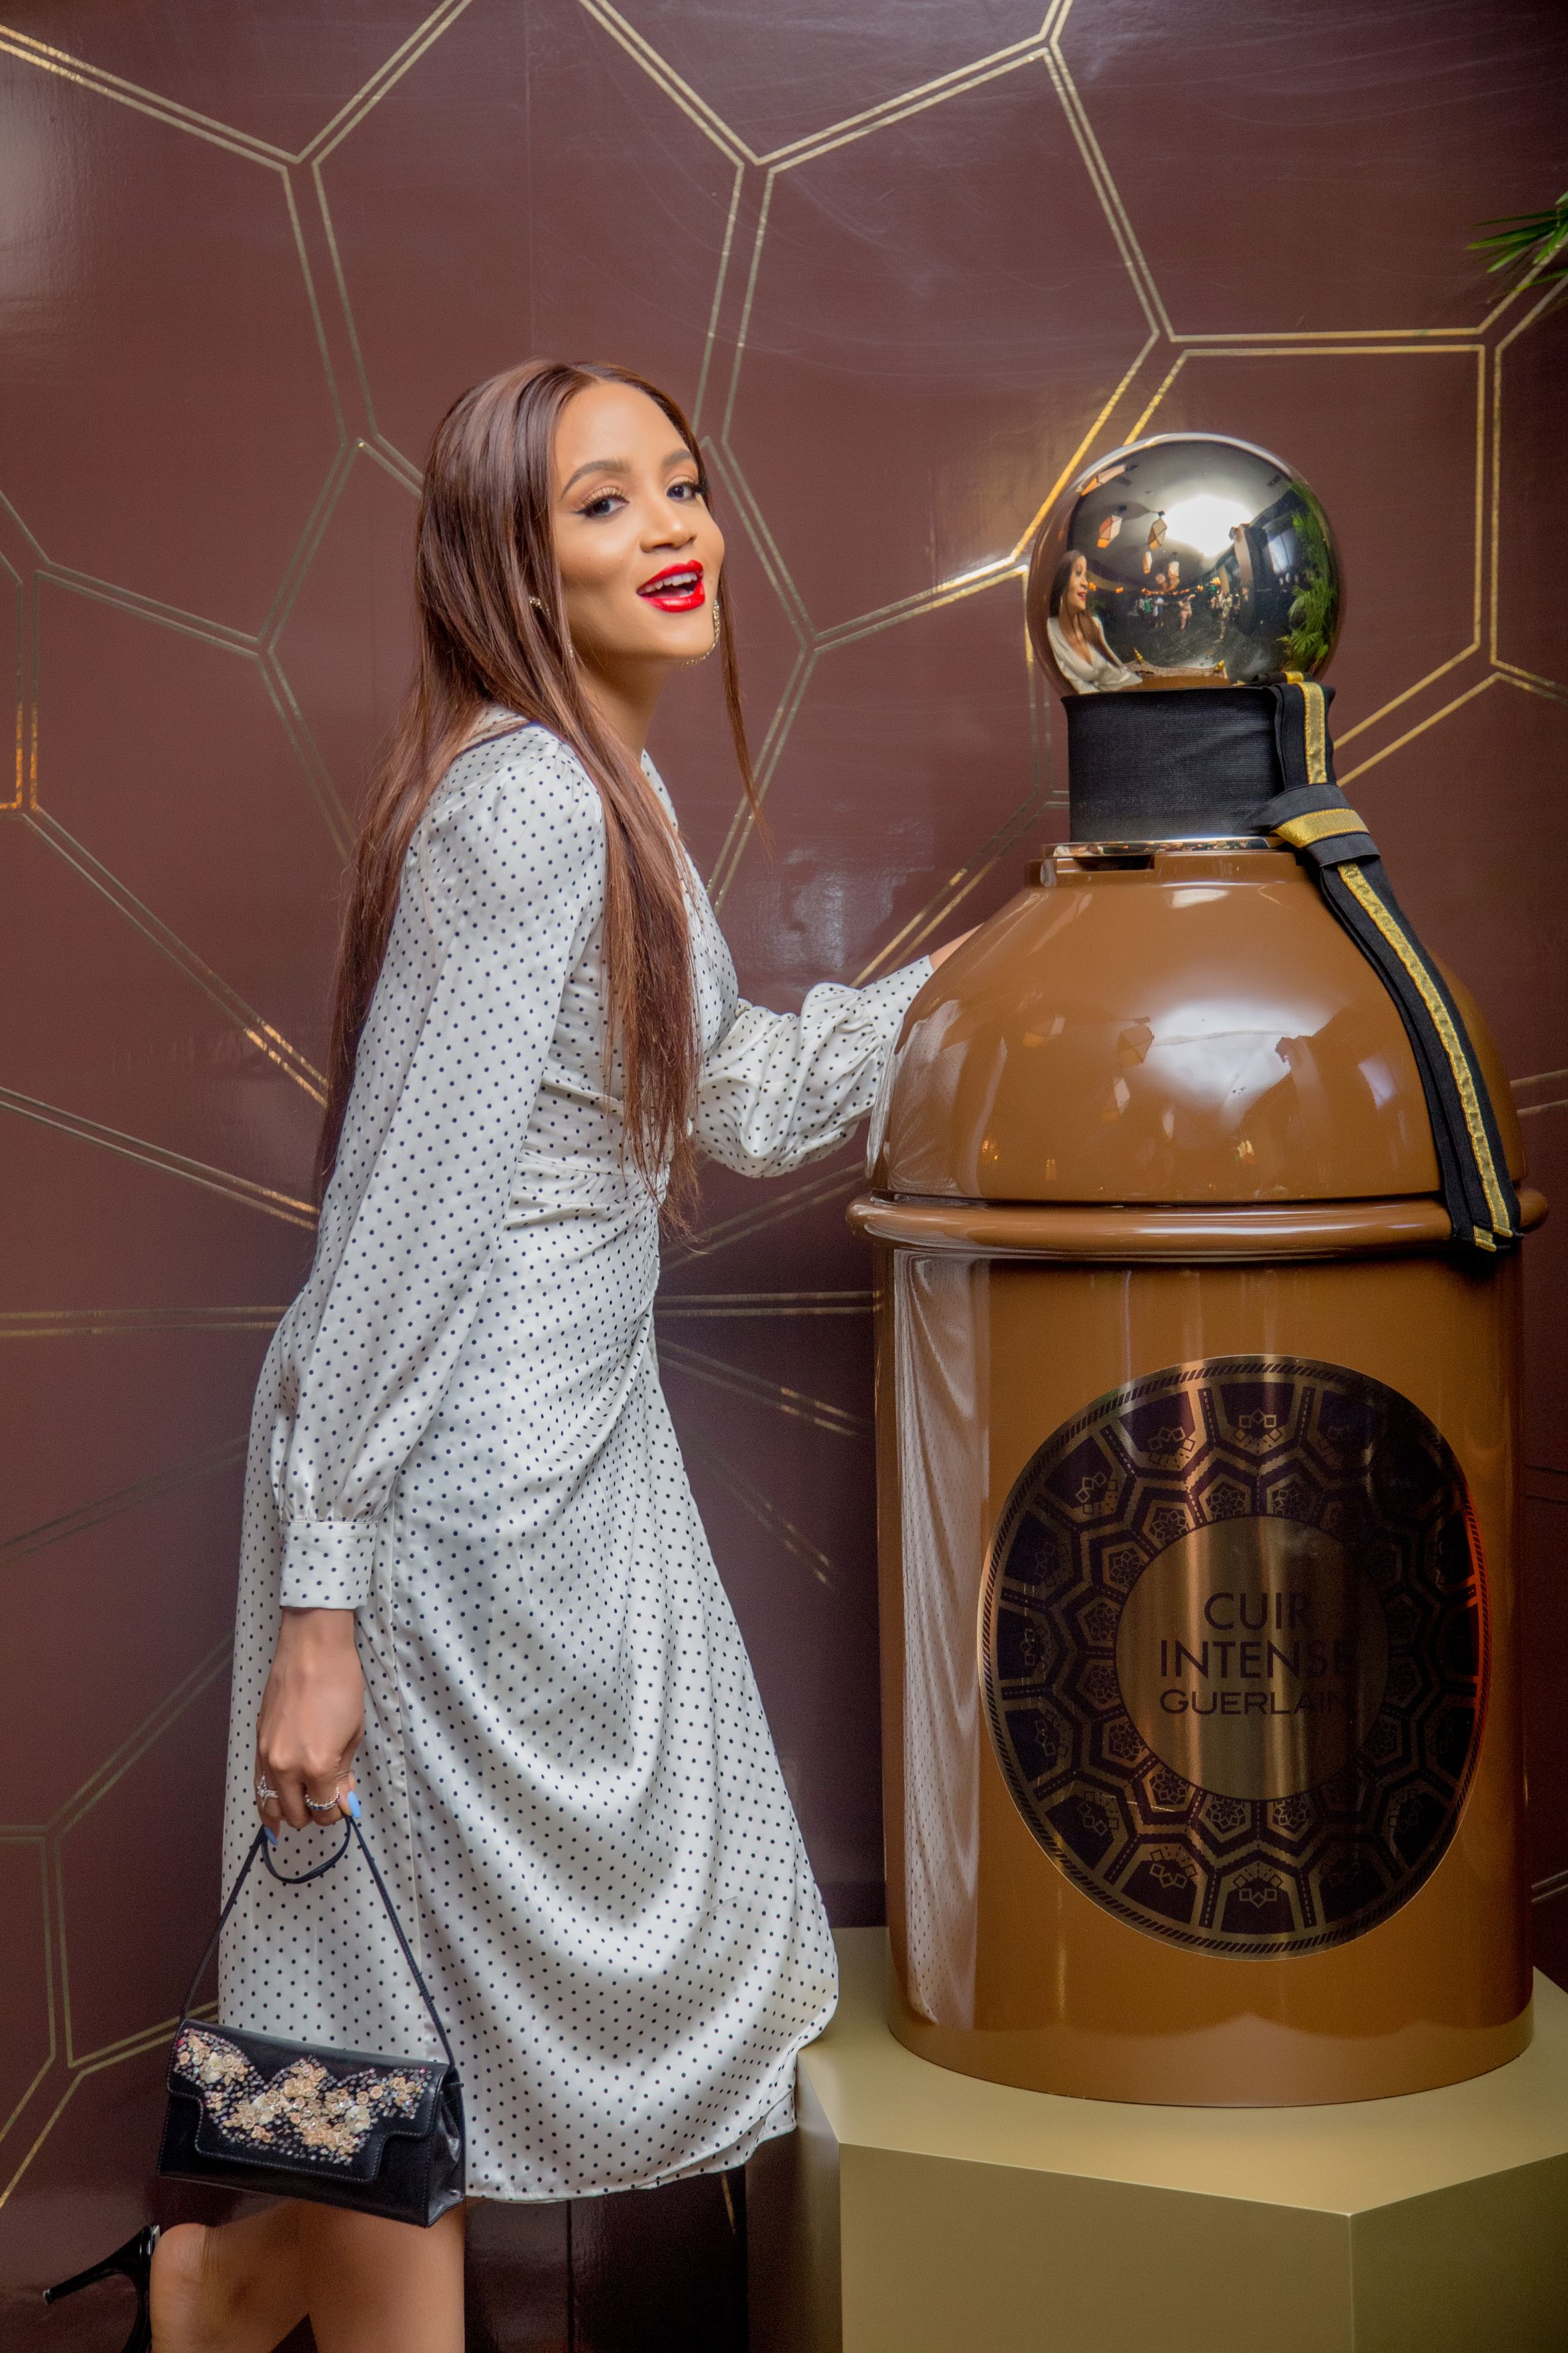 a-journey-to-the-orient-with-the-les-absolus-dorient-collection-by-guerlain